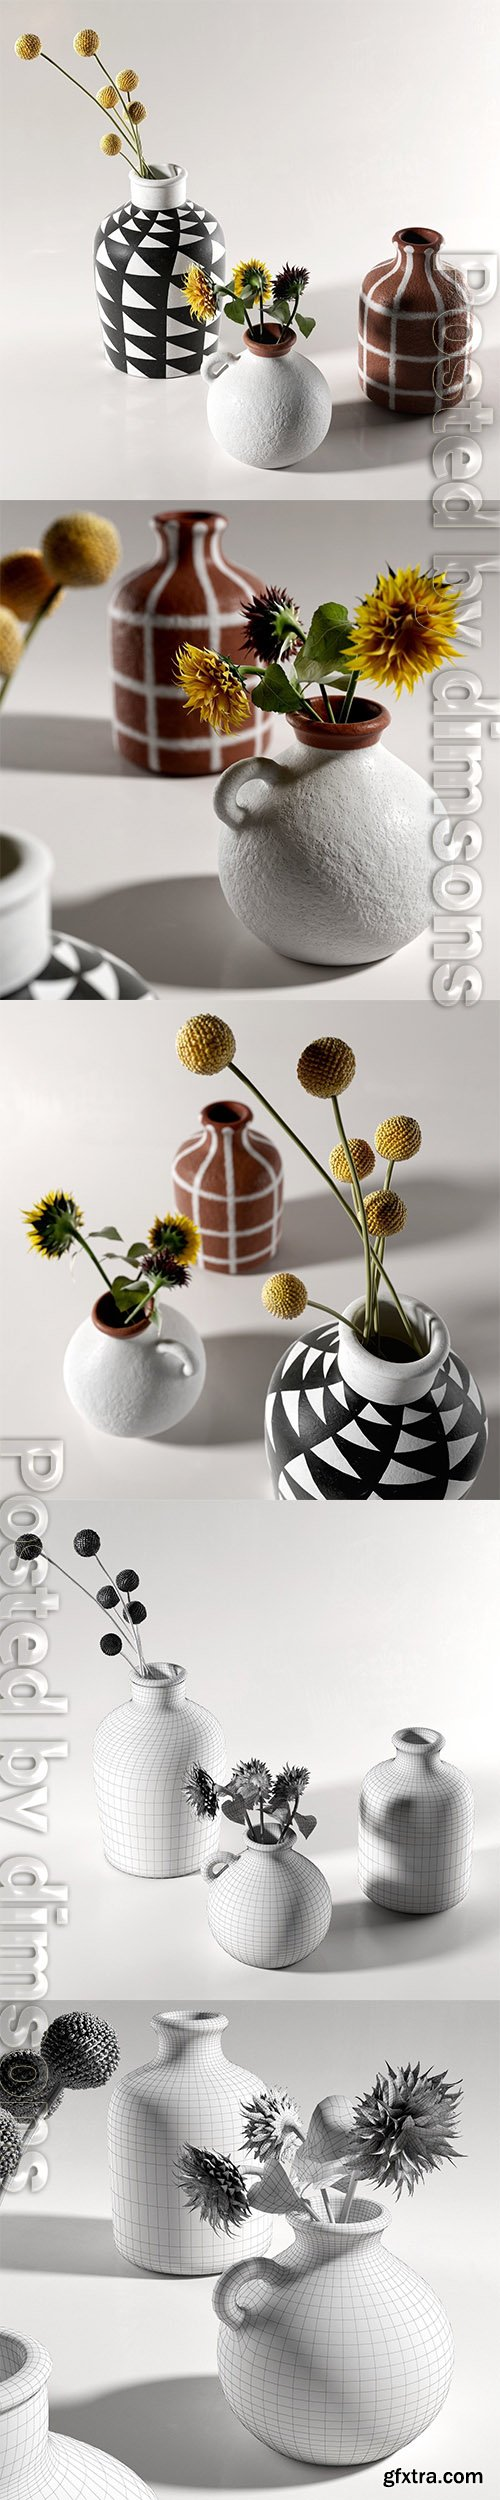 Cgtrader - Morocco Vases with Flowers 3D model